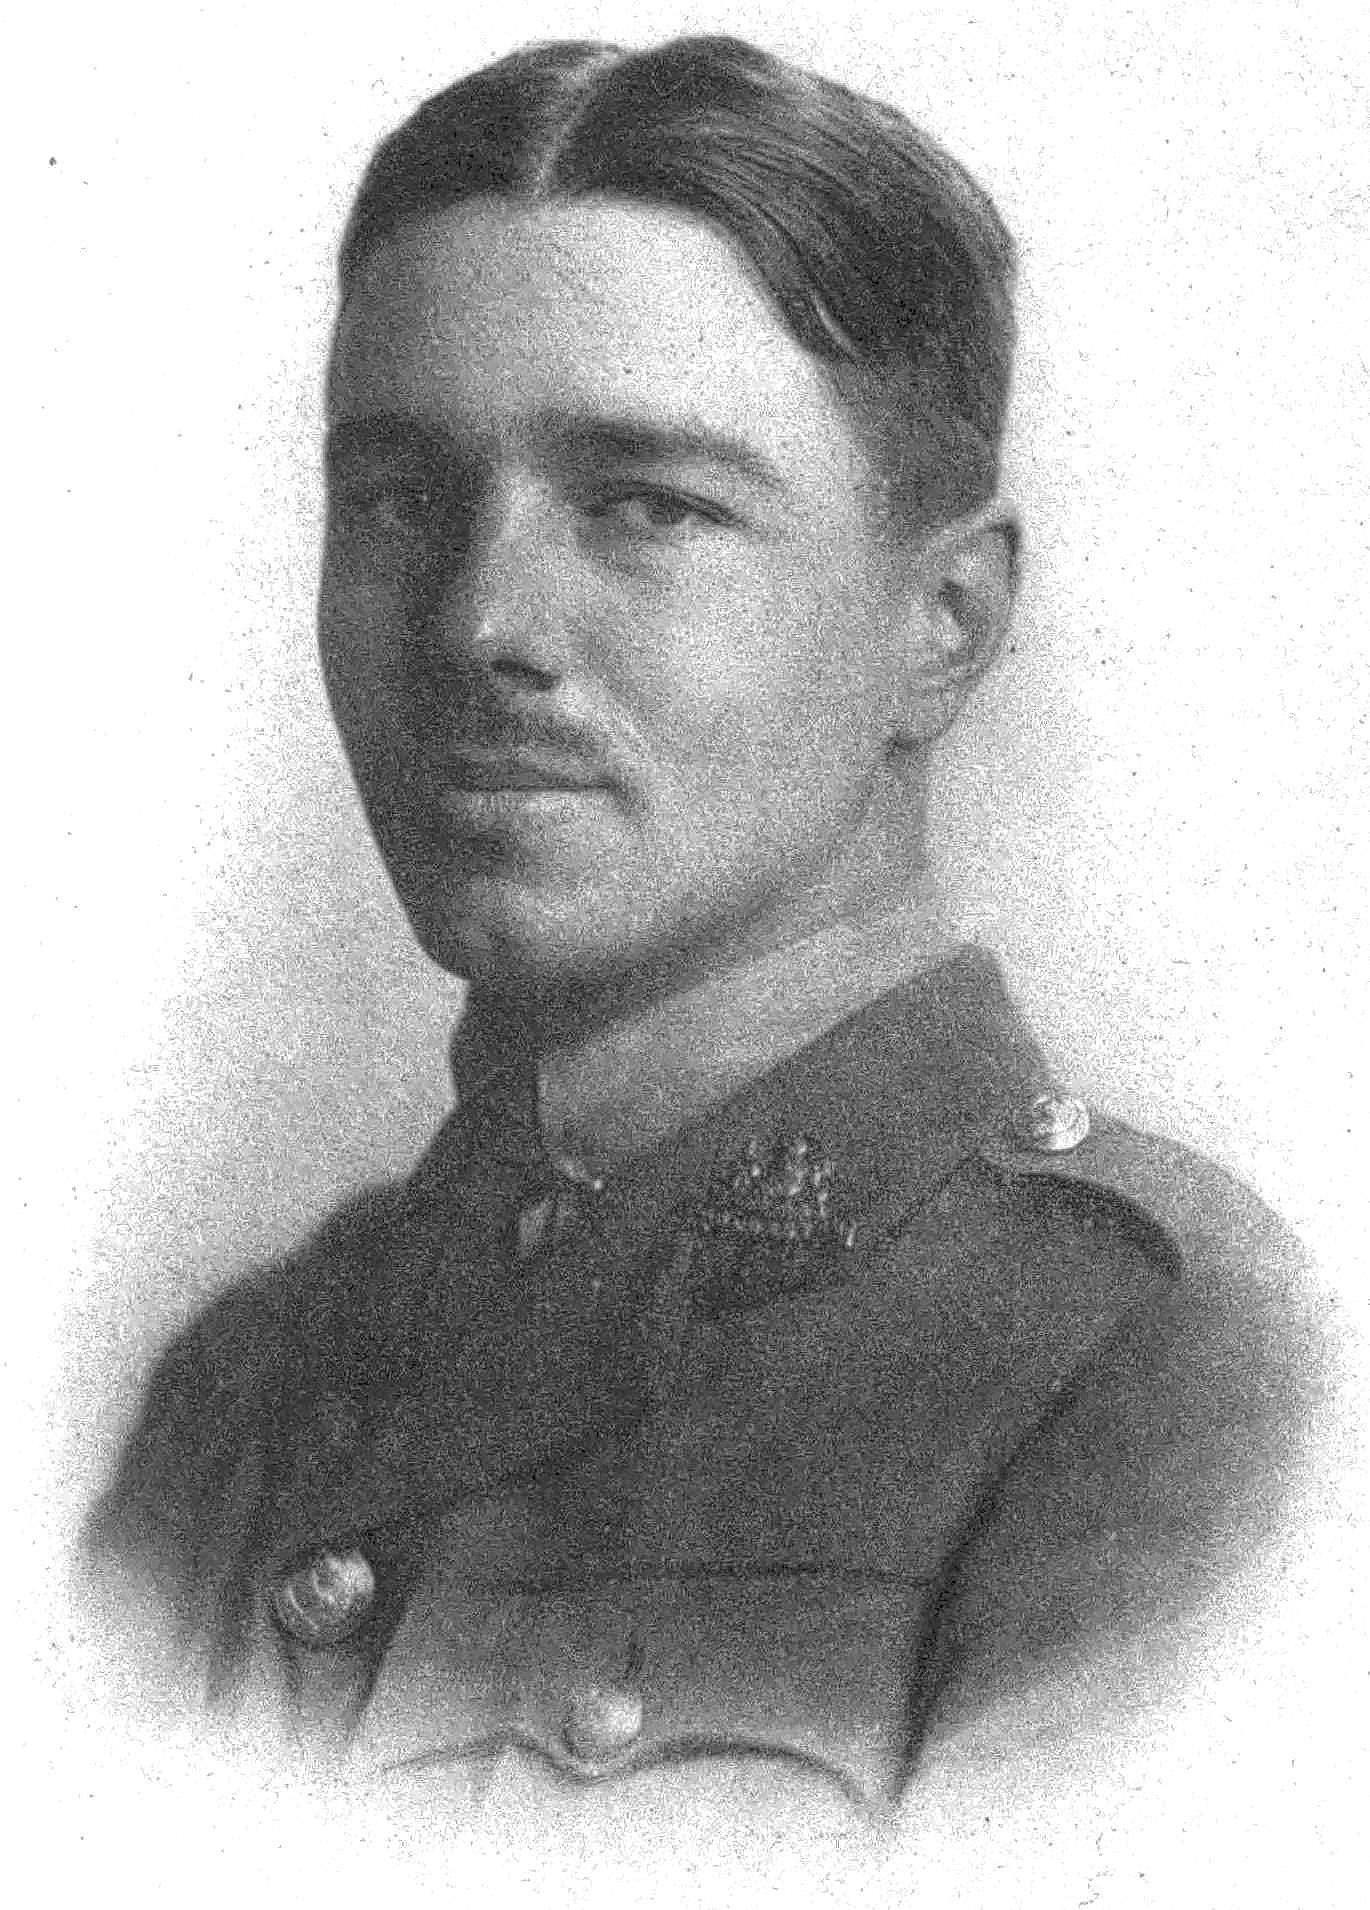 """""""Some Desperate Glory"""" by Max Egremont examines the impact the butchery of World War I had on British poets fighting in the trenches, such as Wilfred Owen."""